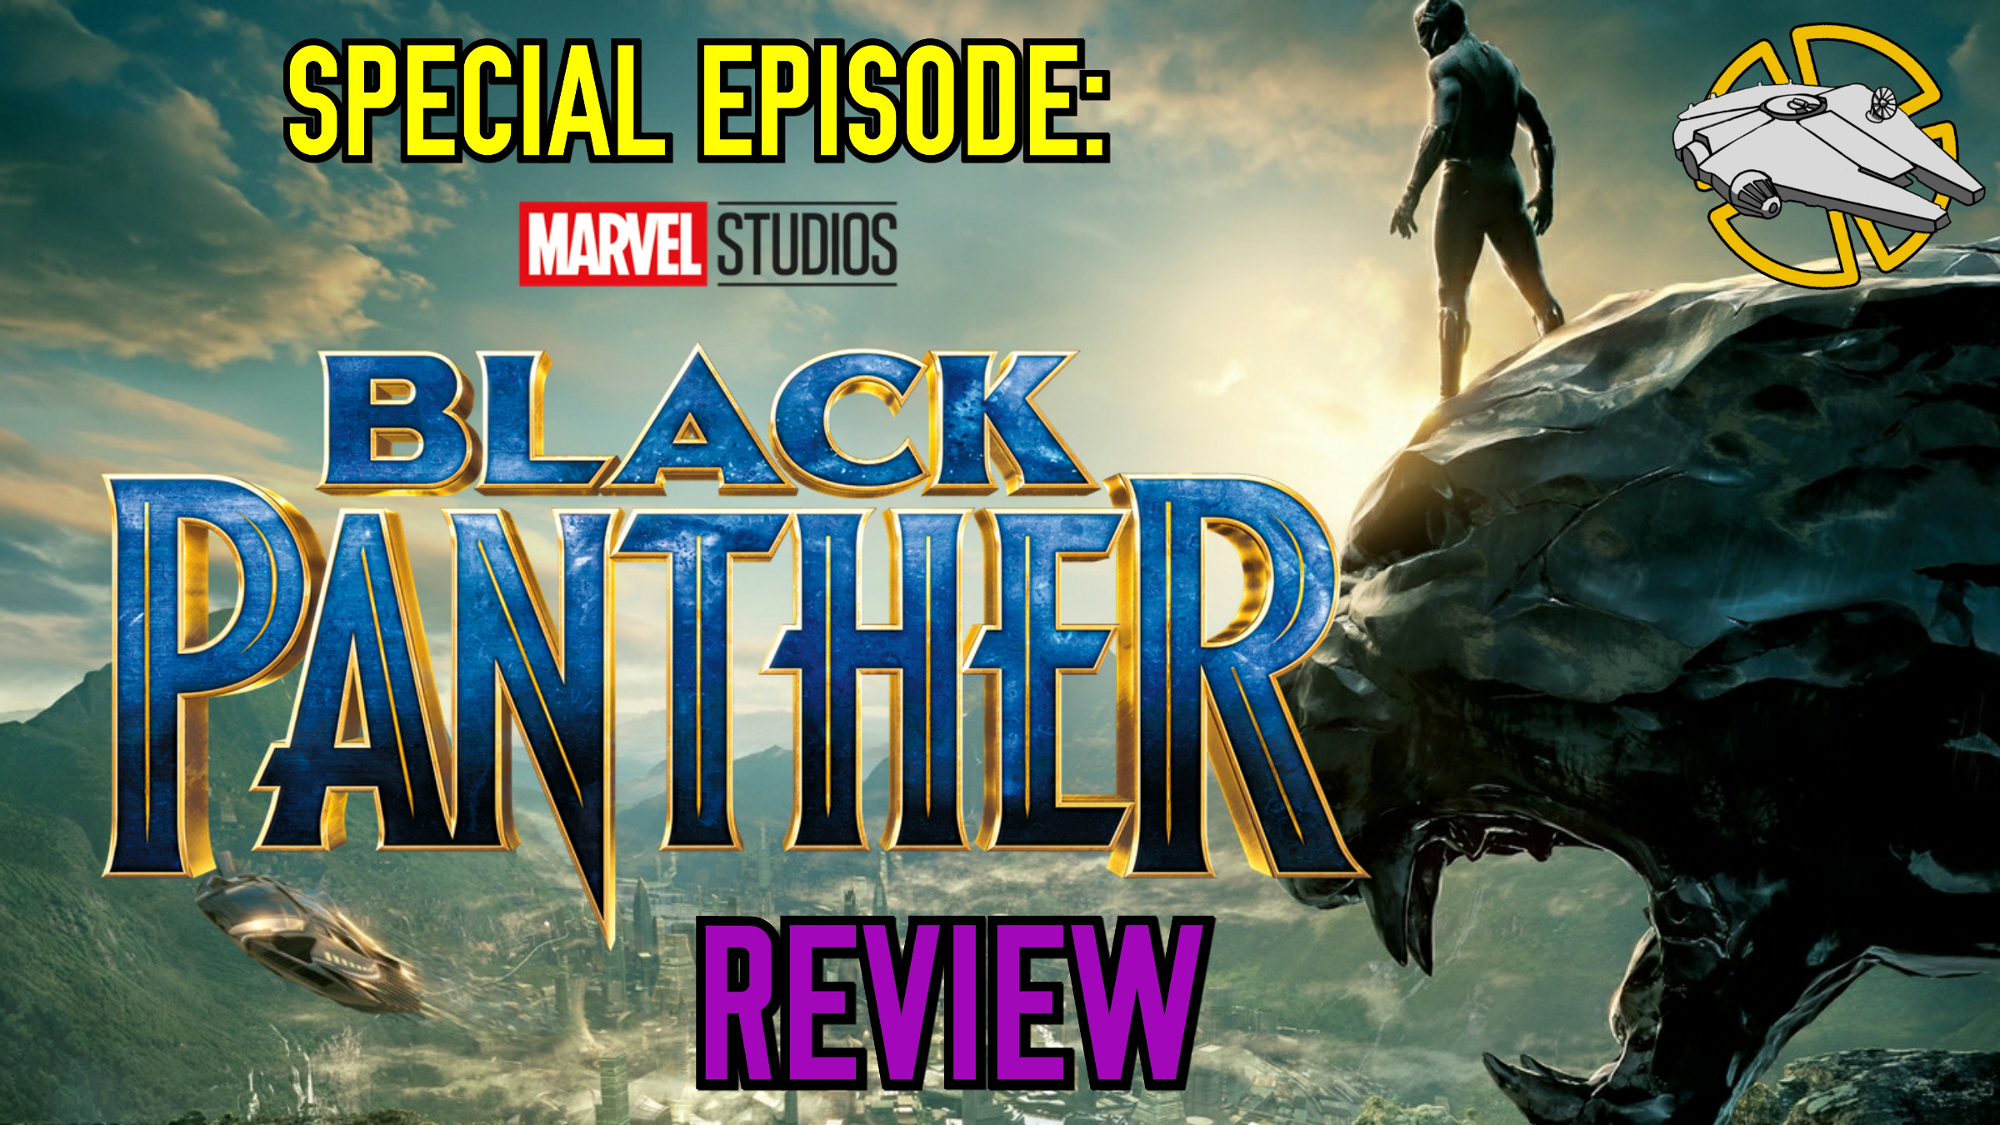 Special Episode: Black Panther Review